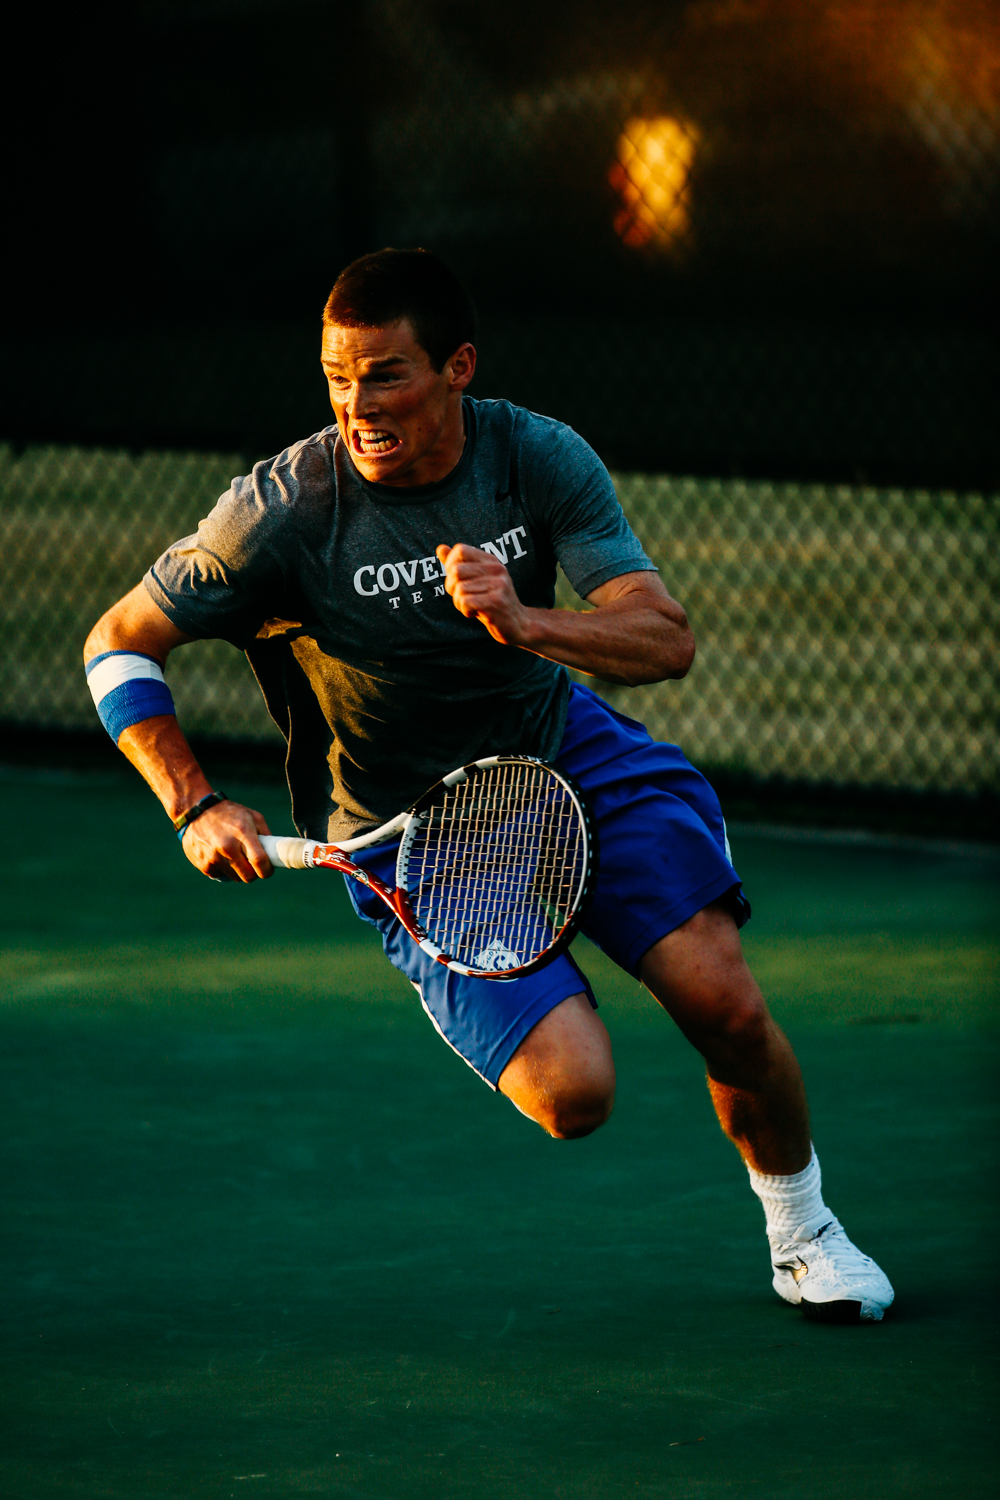 Covenant_College_sports_tennis_baseball_Garrett_Reid_Atlanta_commercial_portrait_sports_photographer-12.jpg